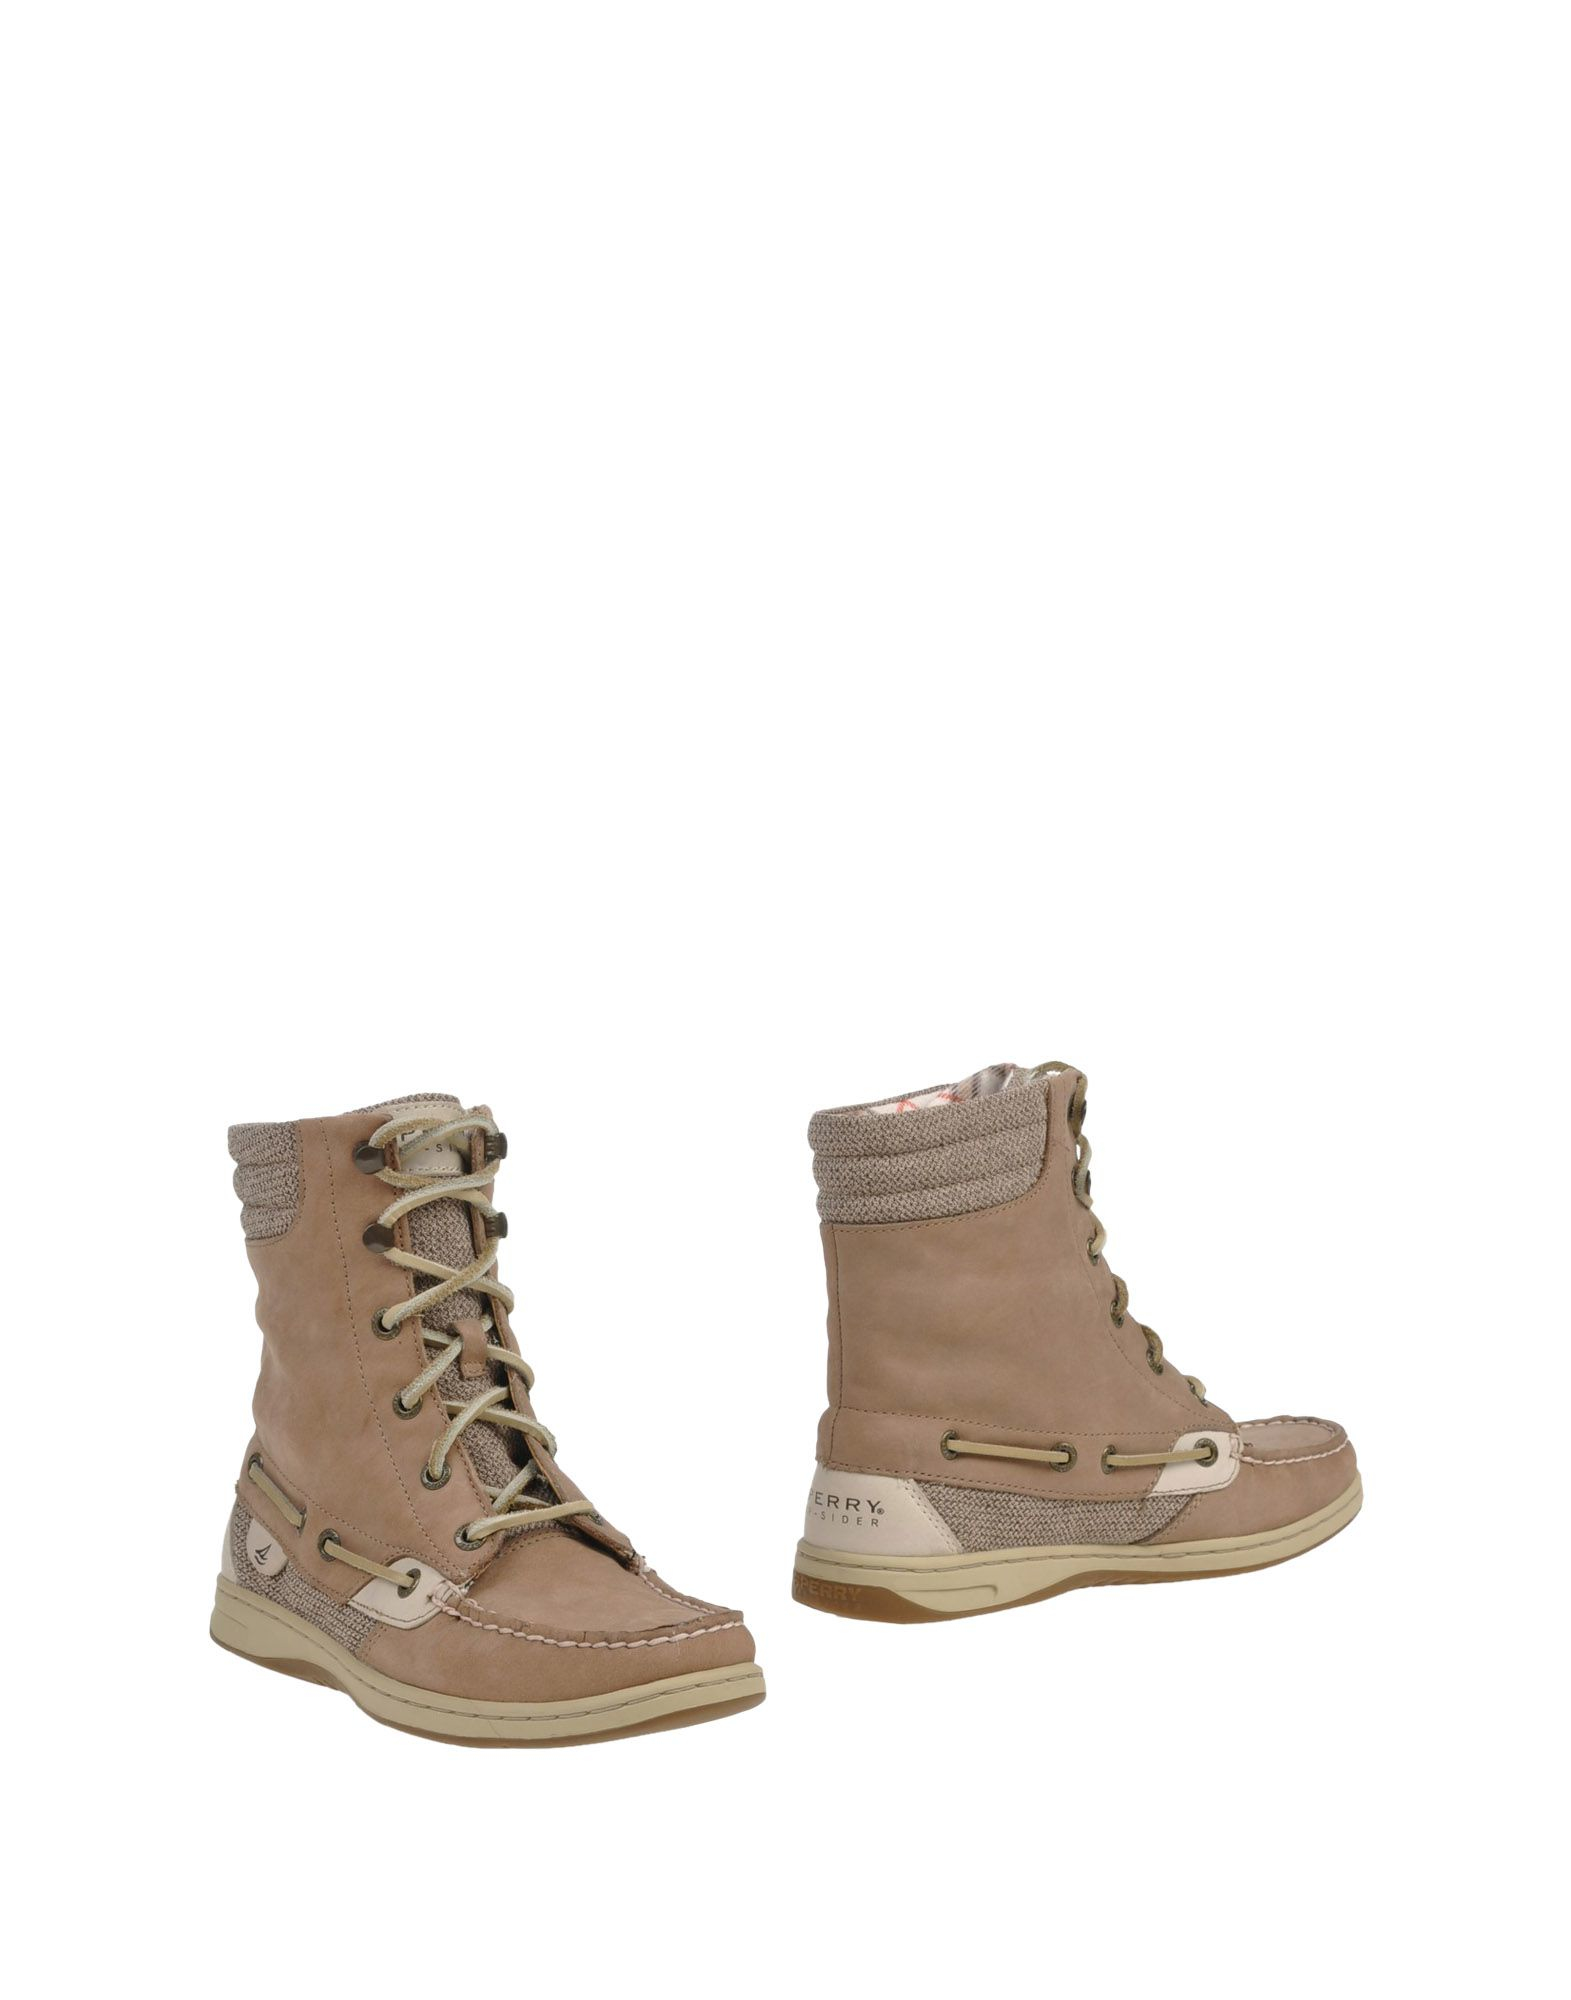 sperry top sider ankle boots in lyst